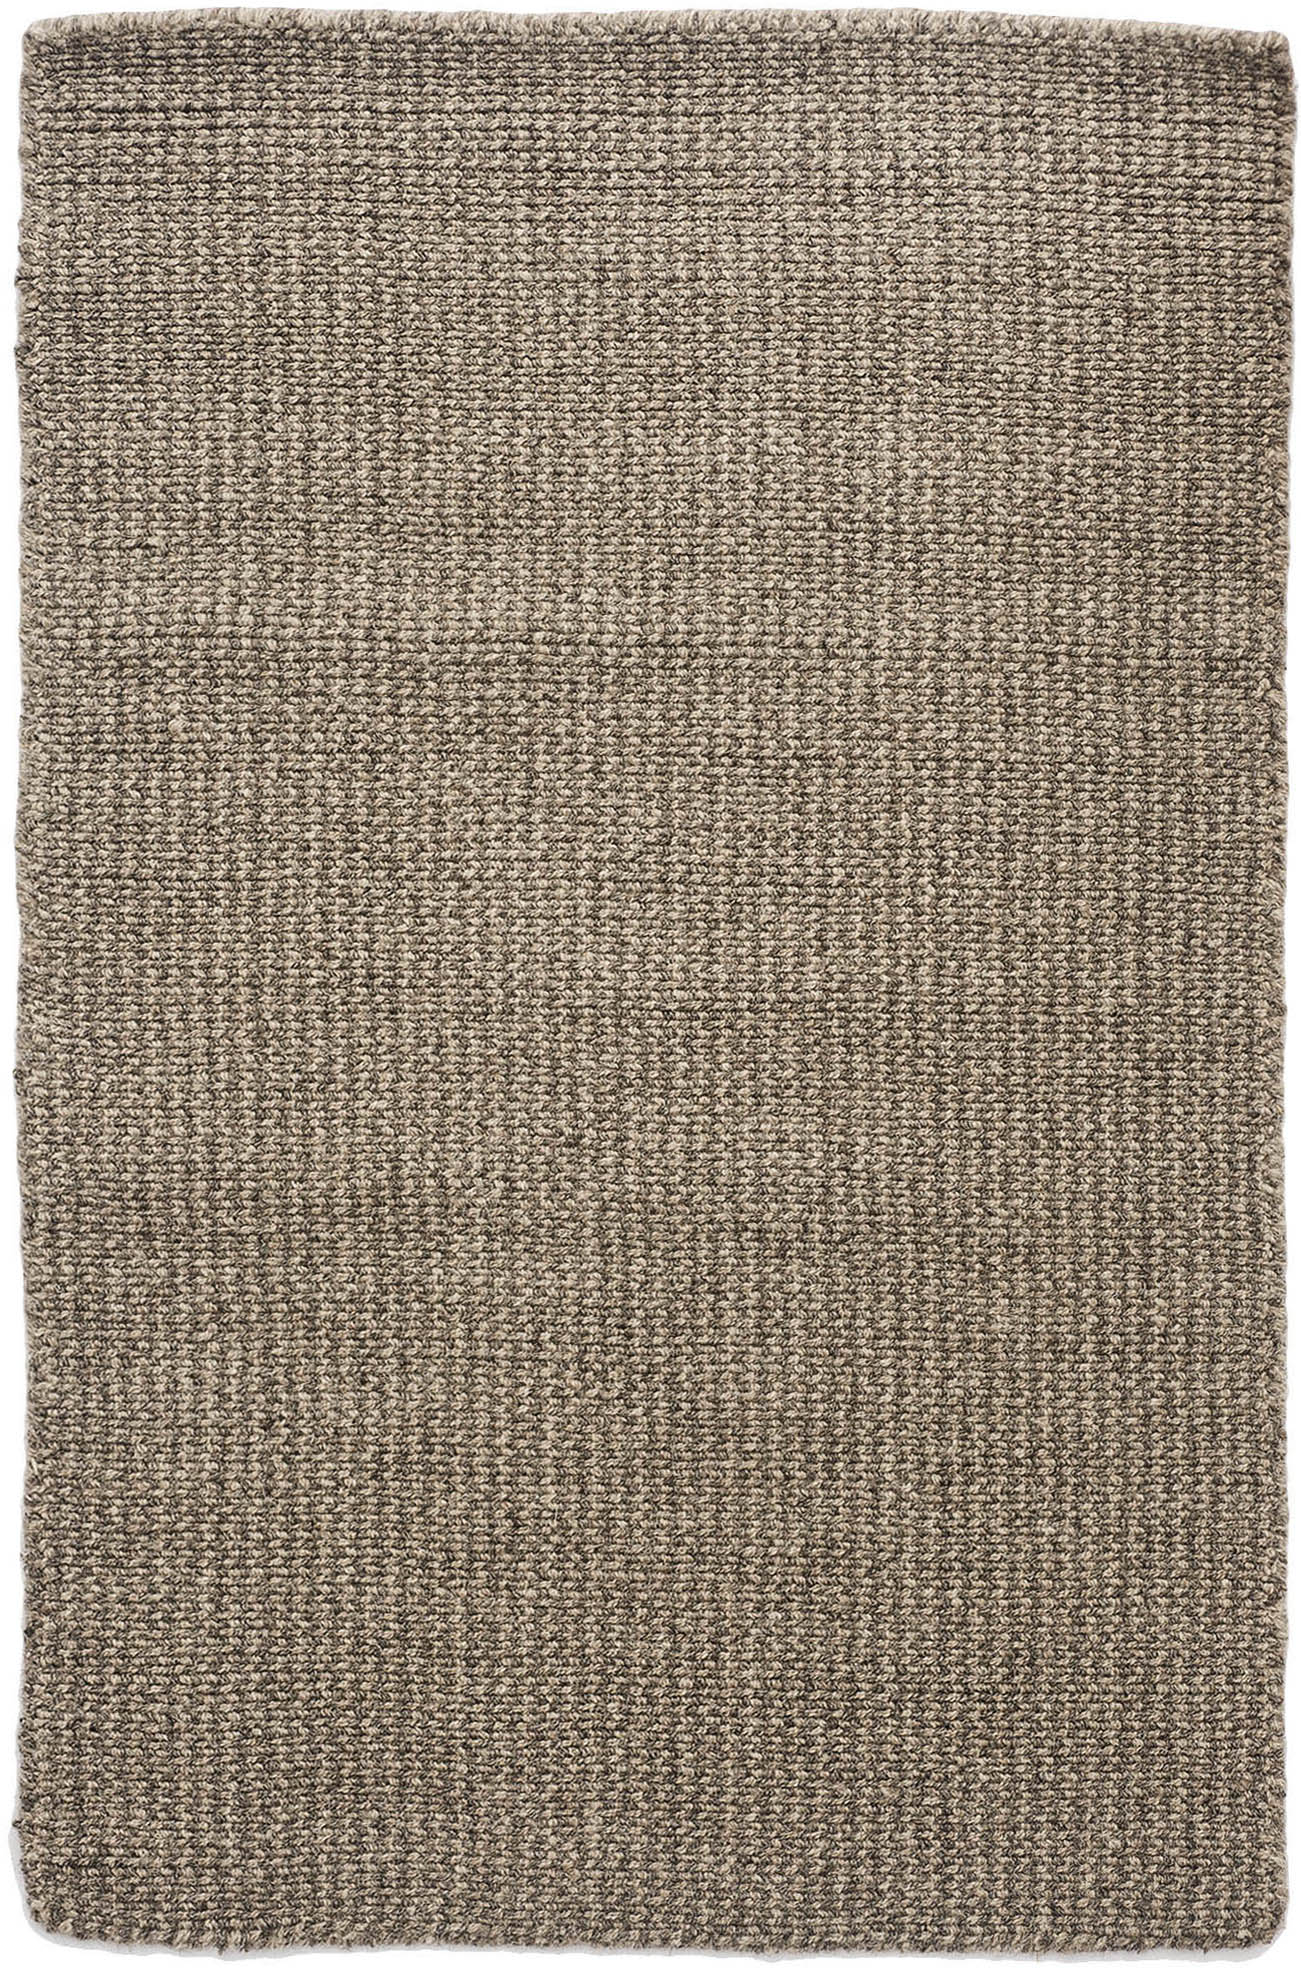 Crossweave Wool Taupe Grey Natural Loom Hooked Rug Hook